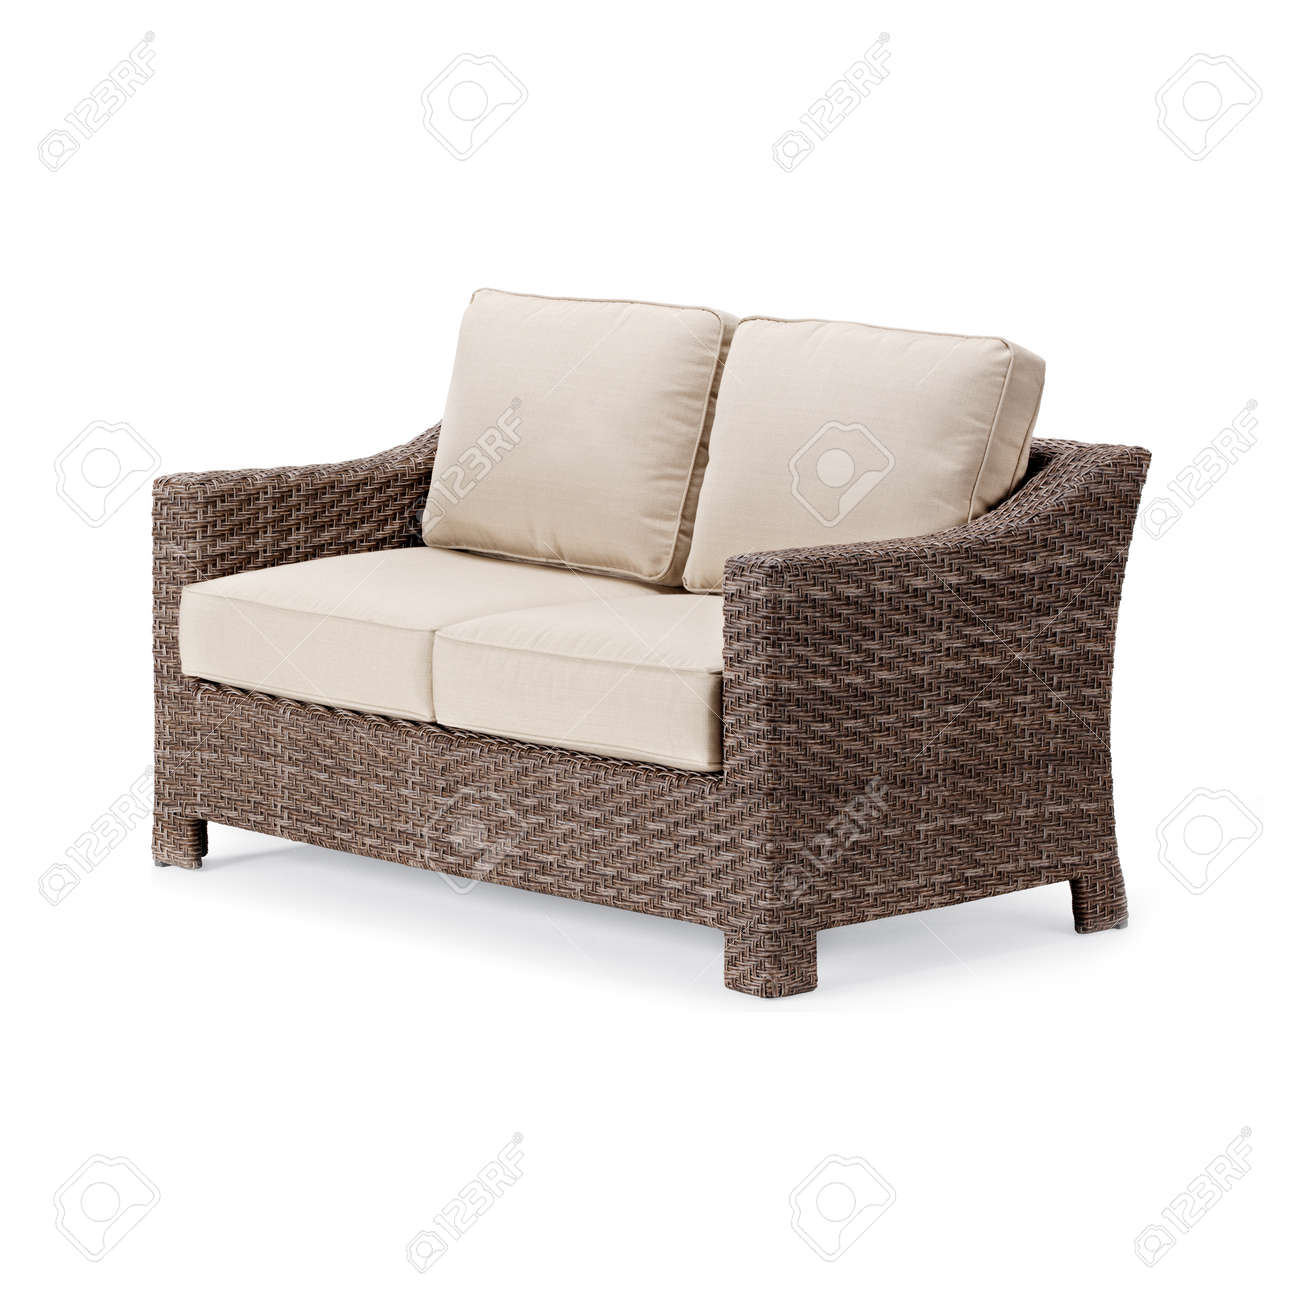 wicker outdoor sofa isolated on white background side view of